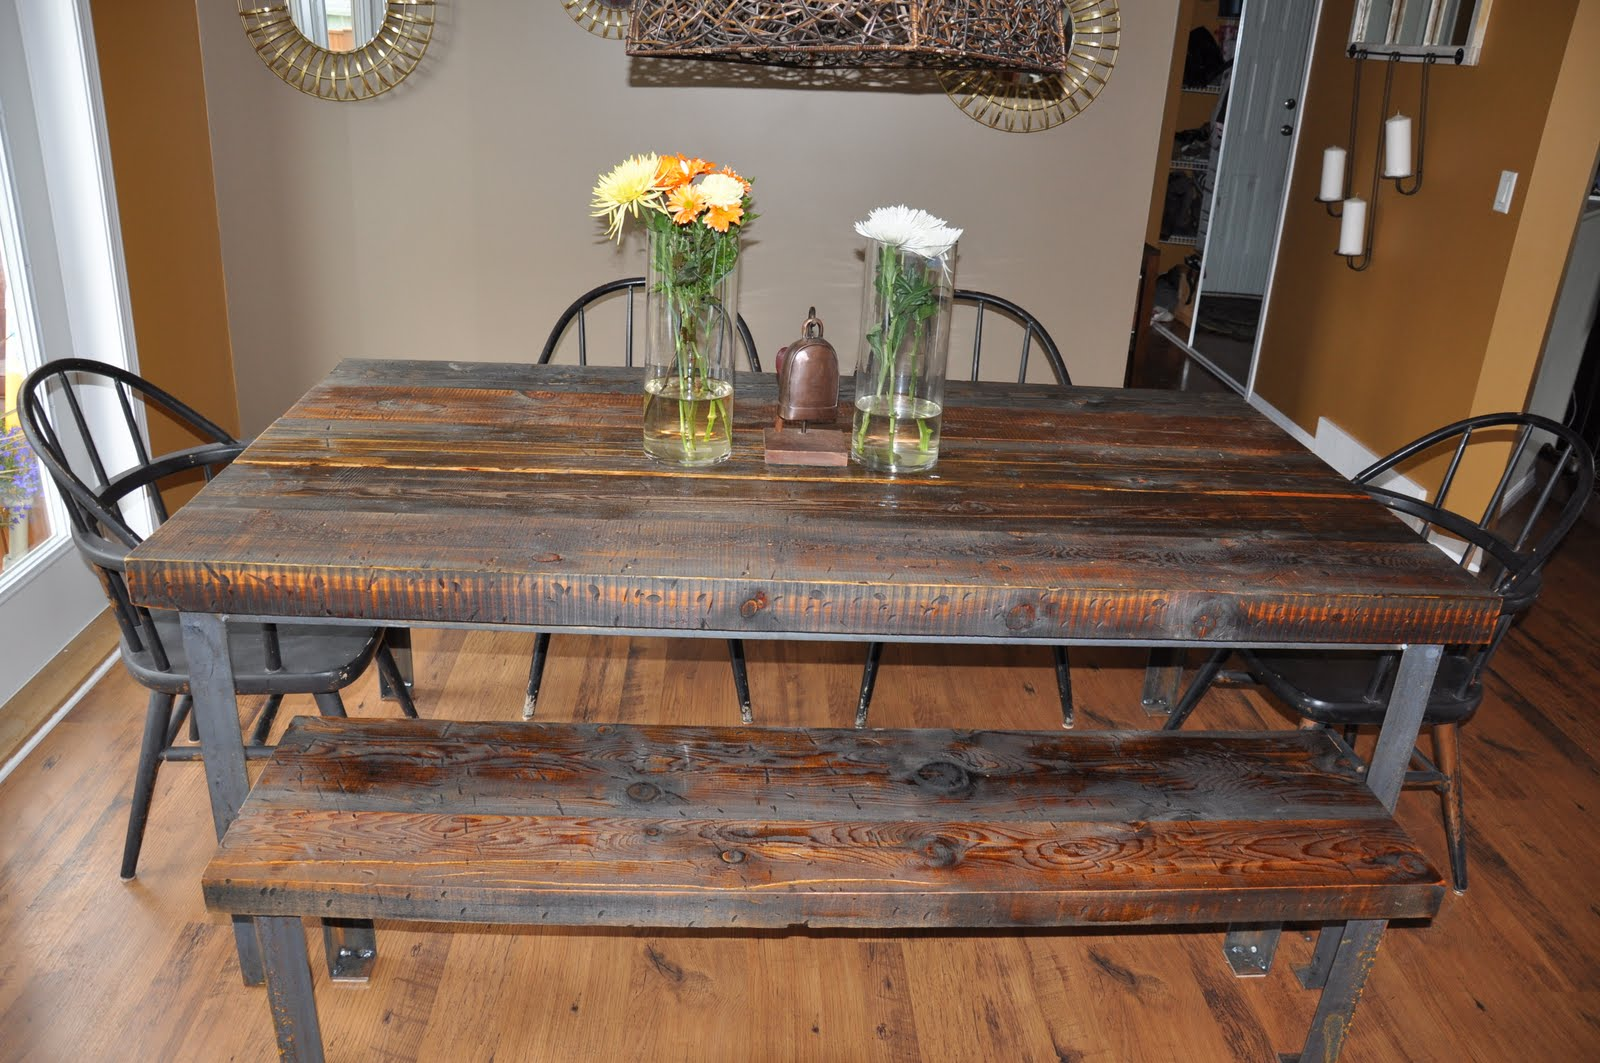 WESTSIDE CURB APPEAL Inc CUSTOM BUILT WEATHER WOOD AND METAL TABLE